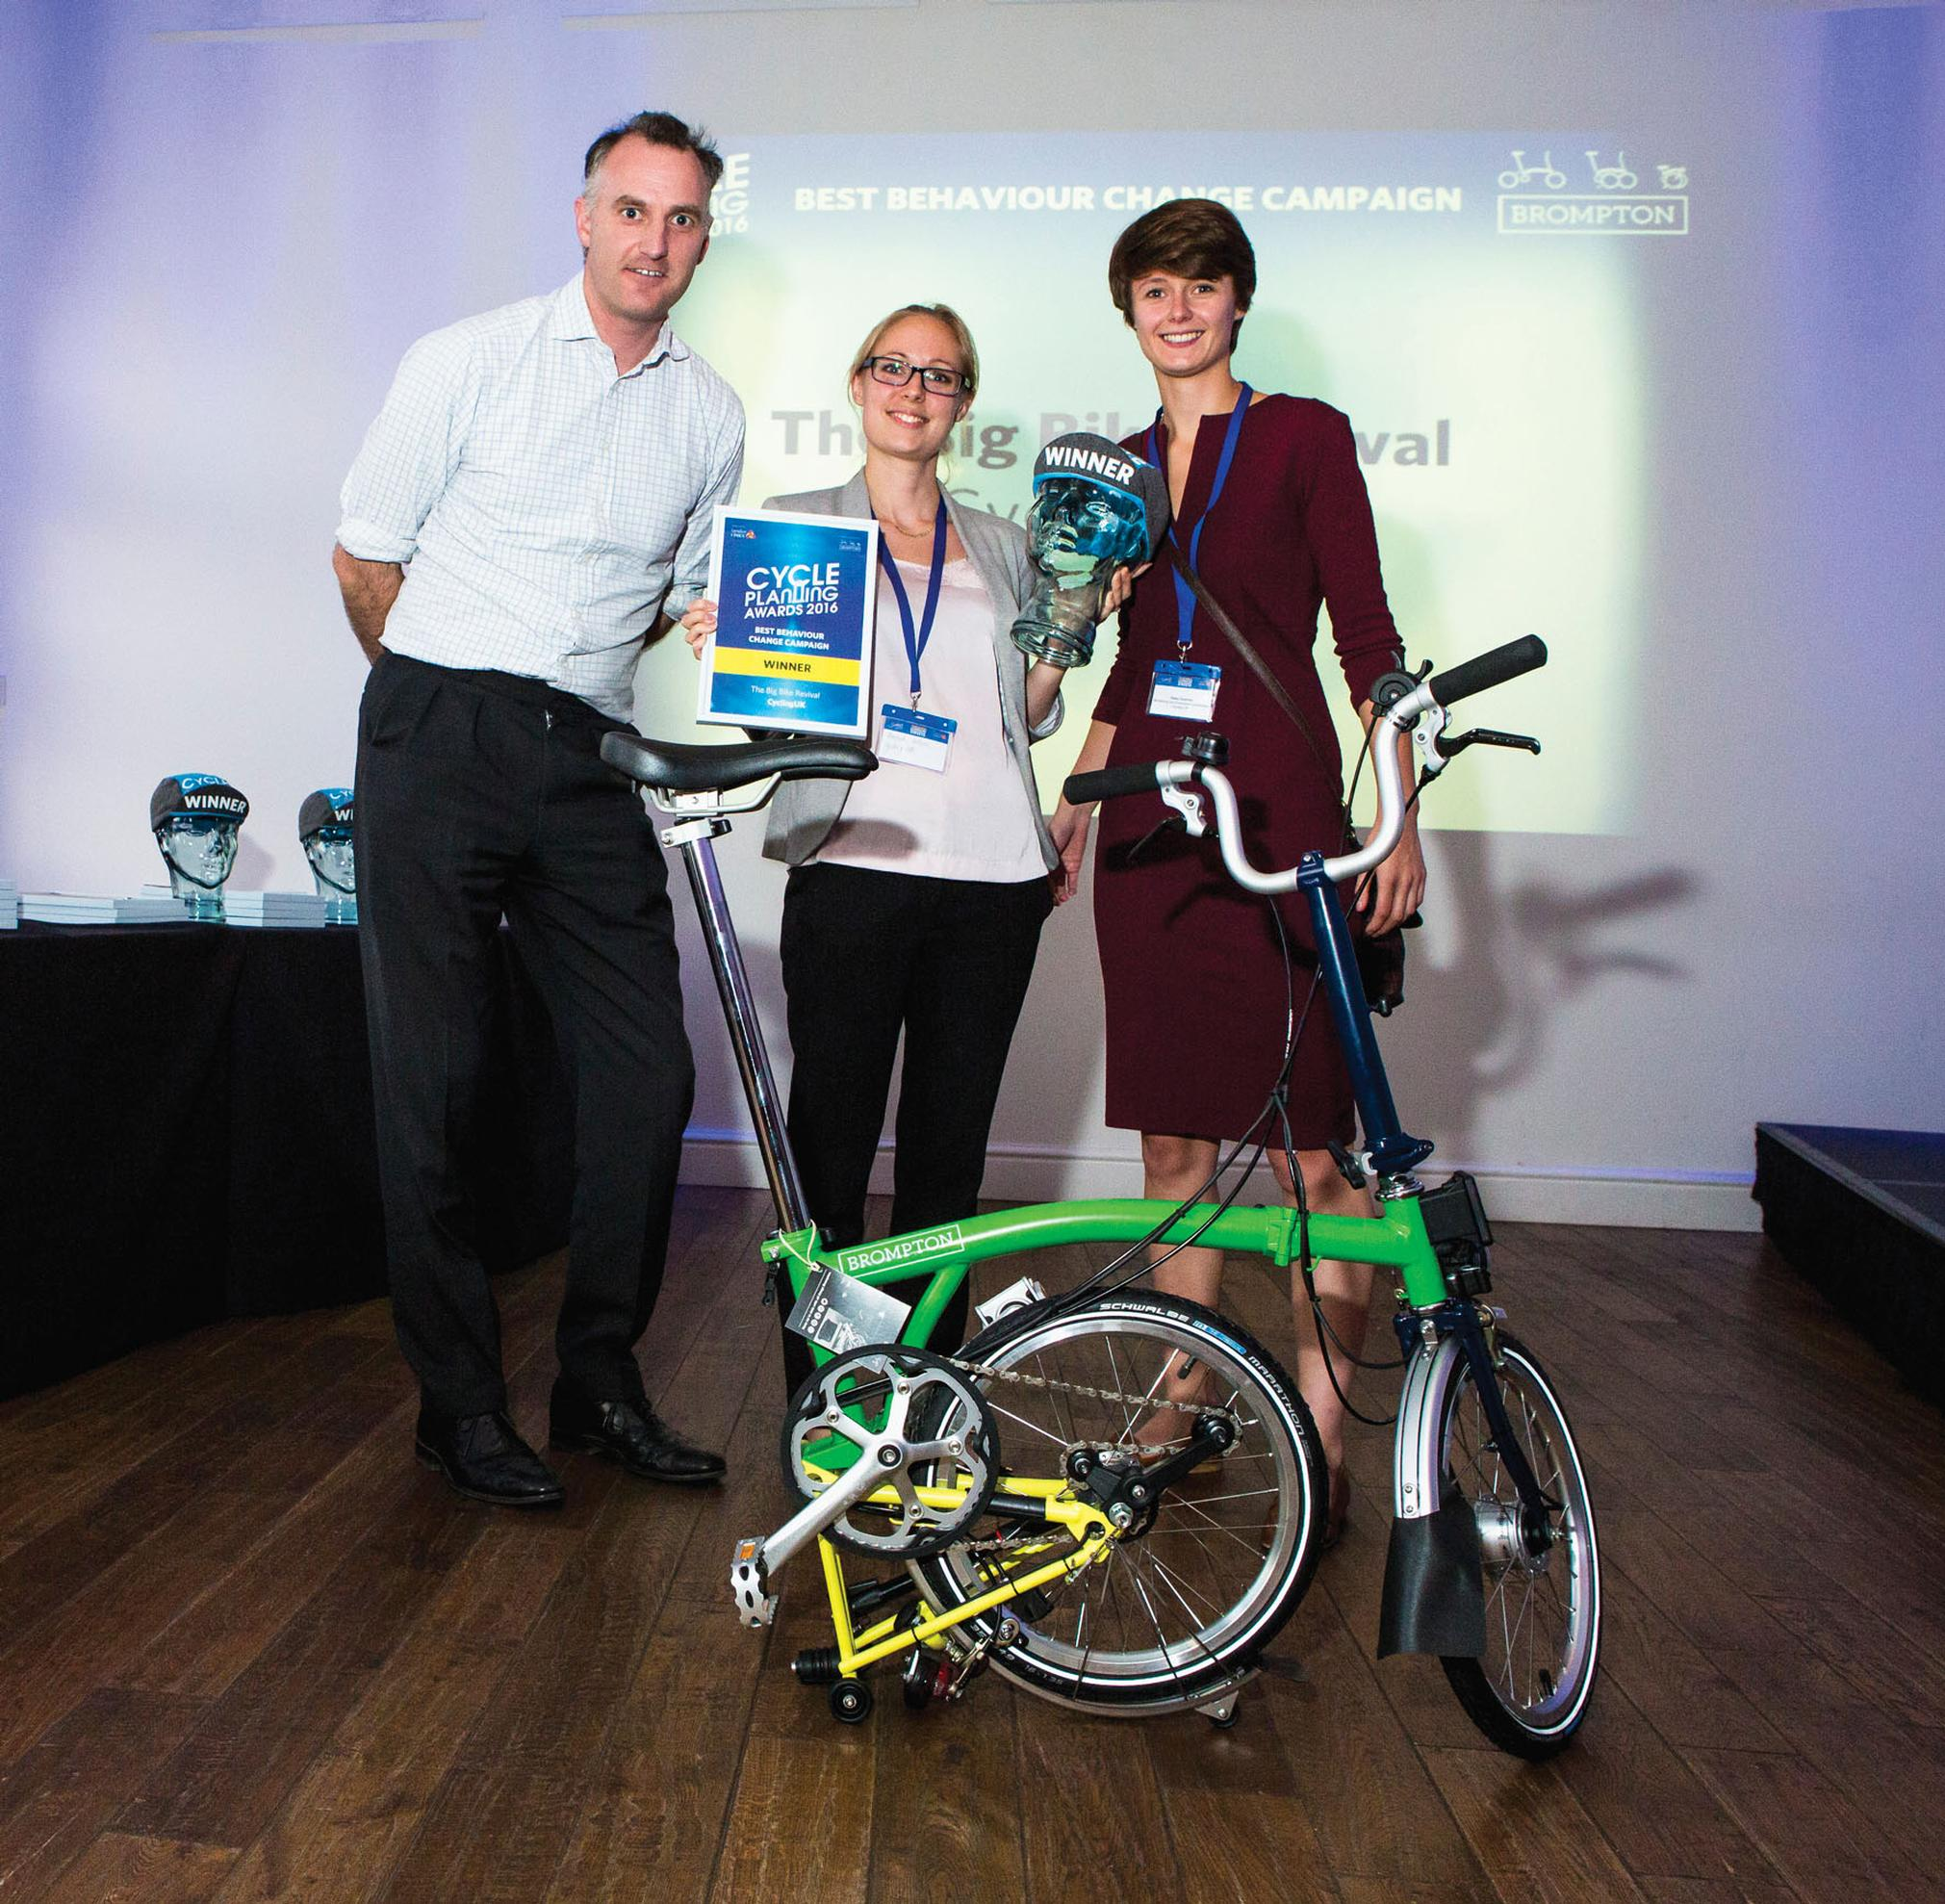 Cycle planning champions